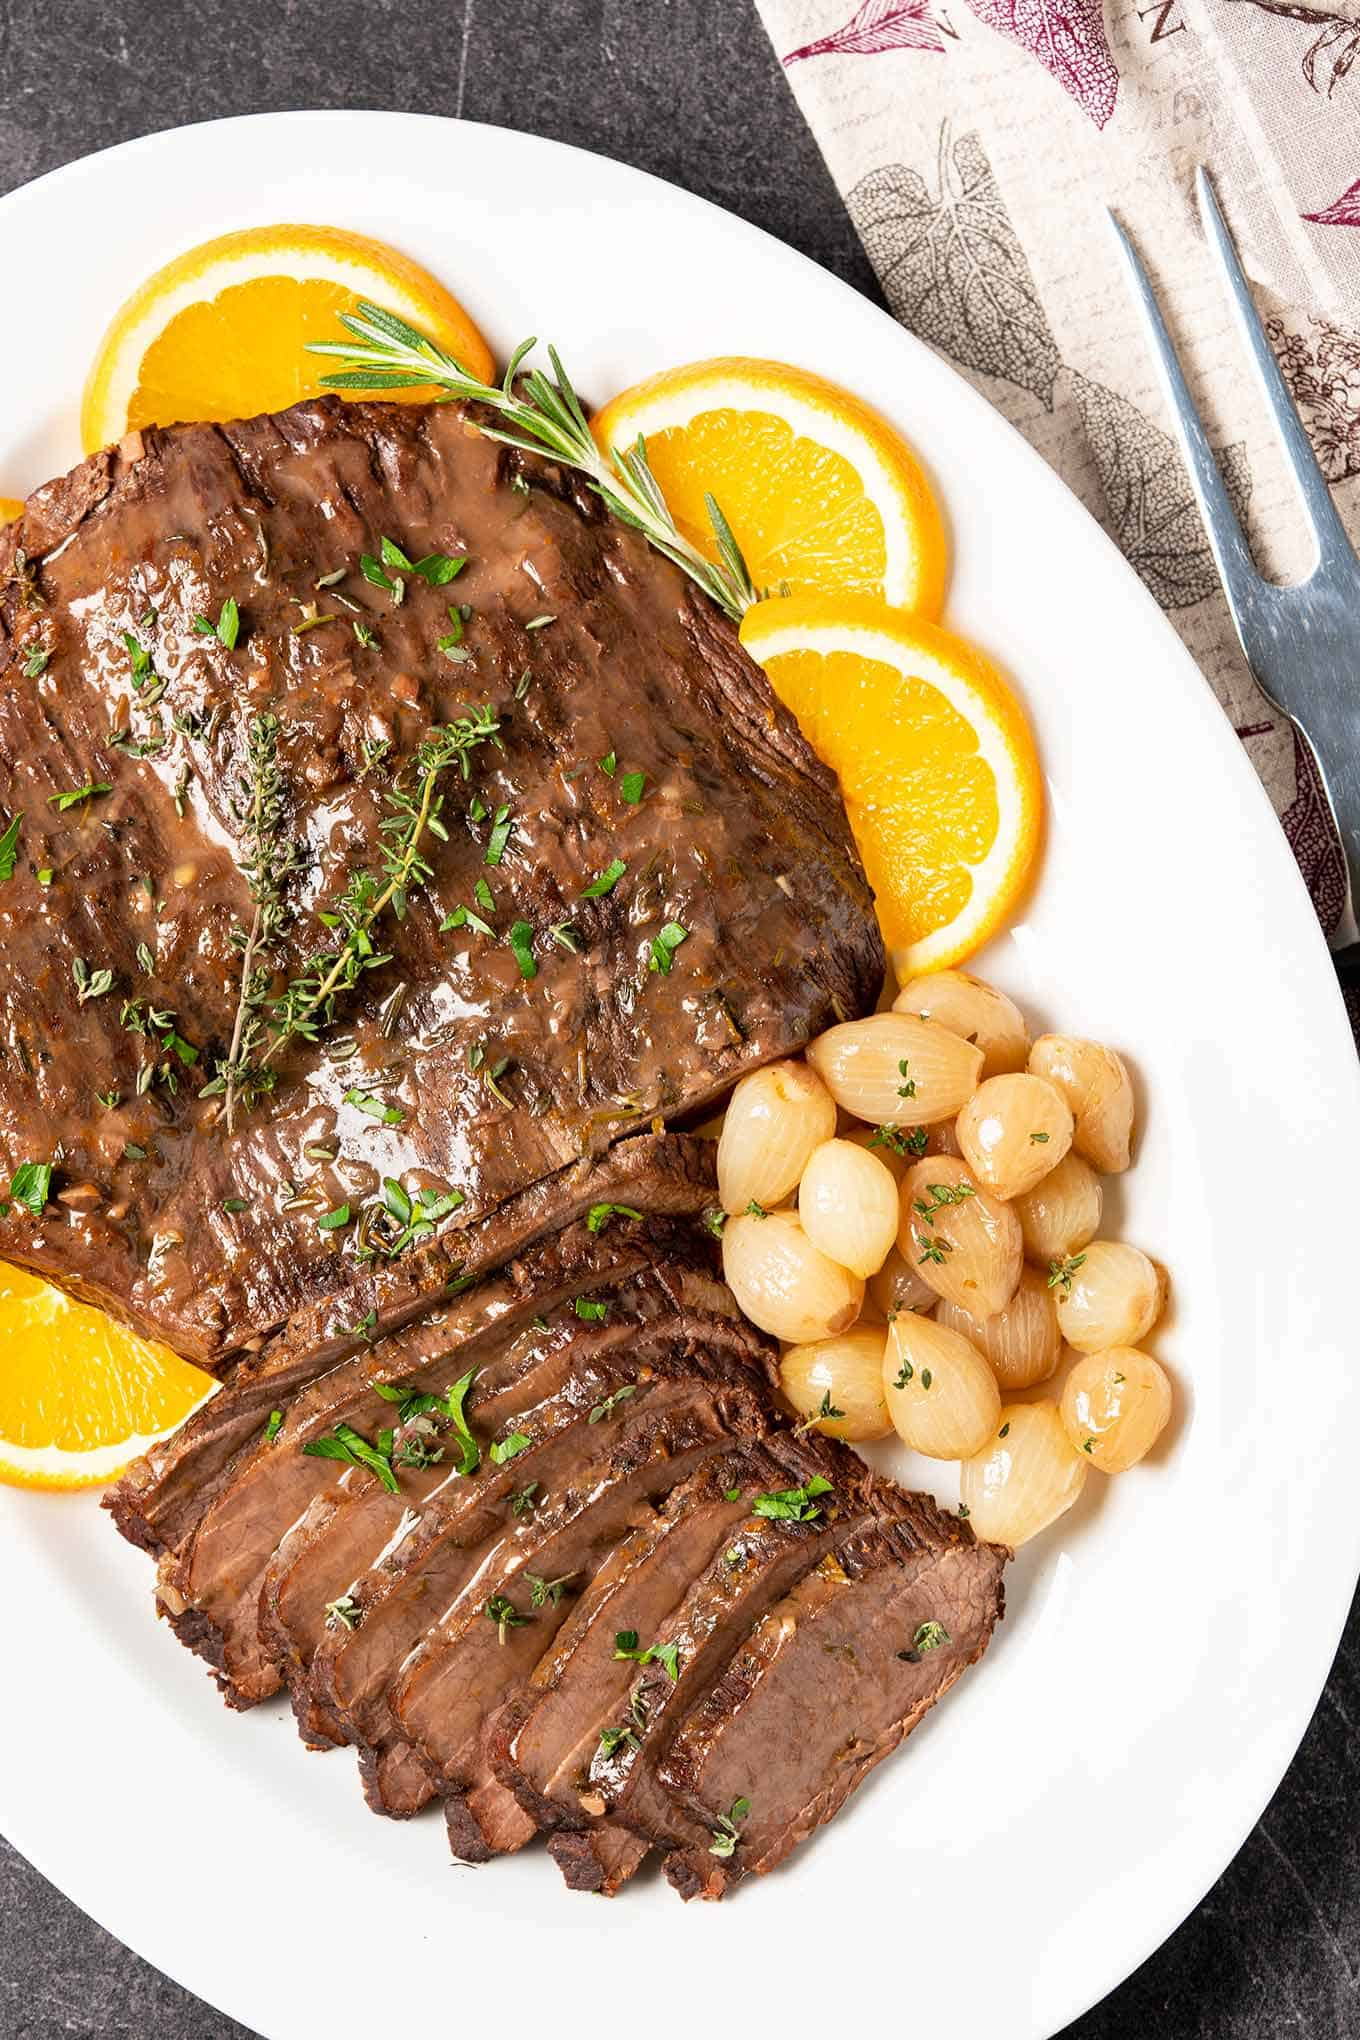 Platter of carved beef brisket garnished with oranges, pearl onions, fresh rosemary and thyme.